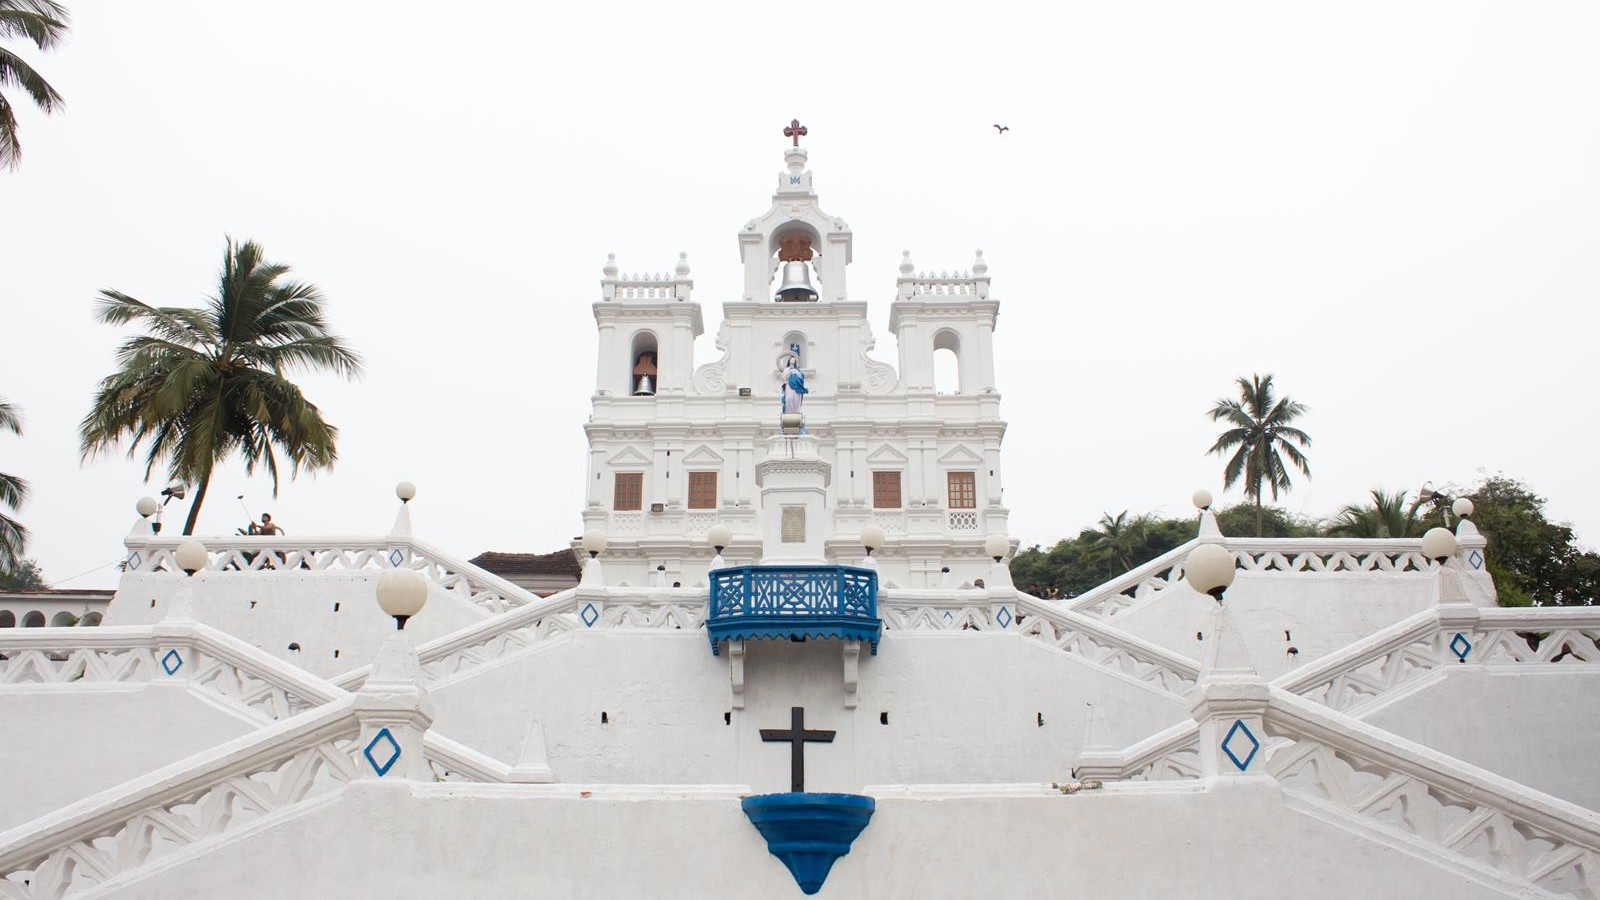 Church of Our Lady of the Immaculate Conception in Panaji, goa, india